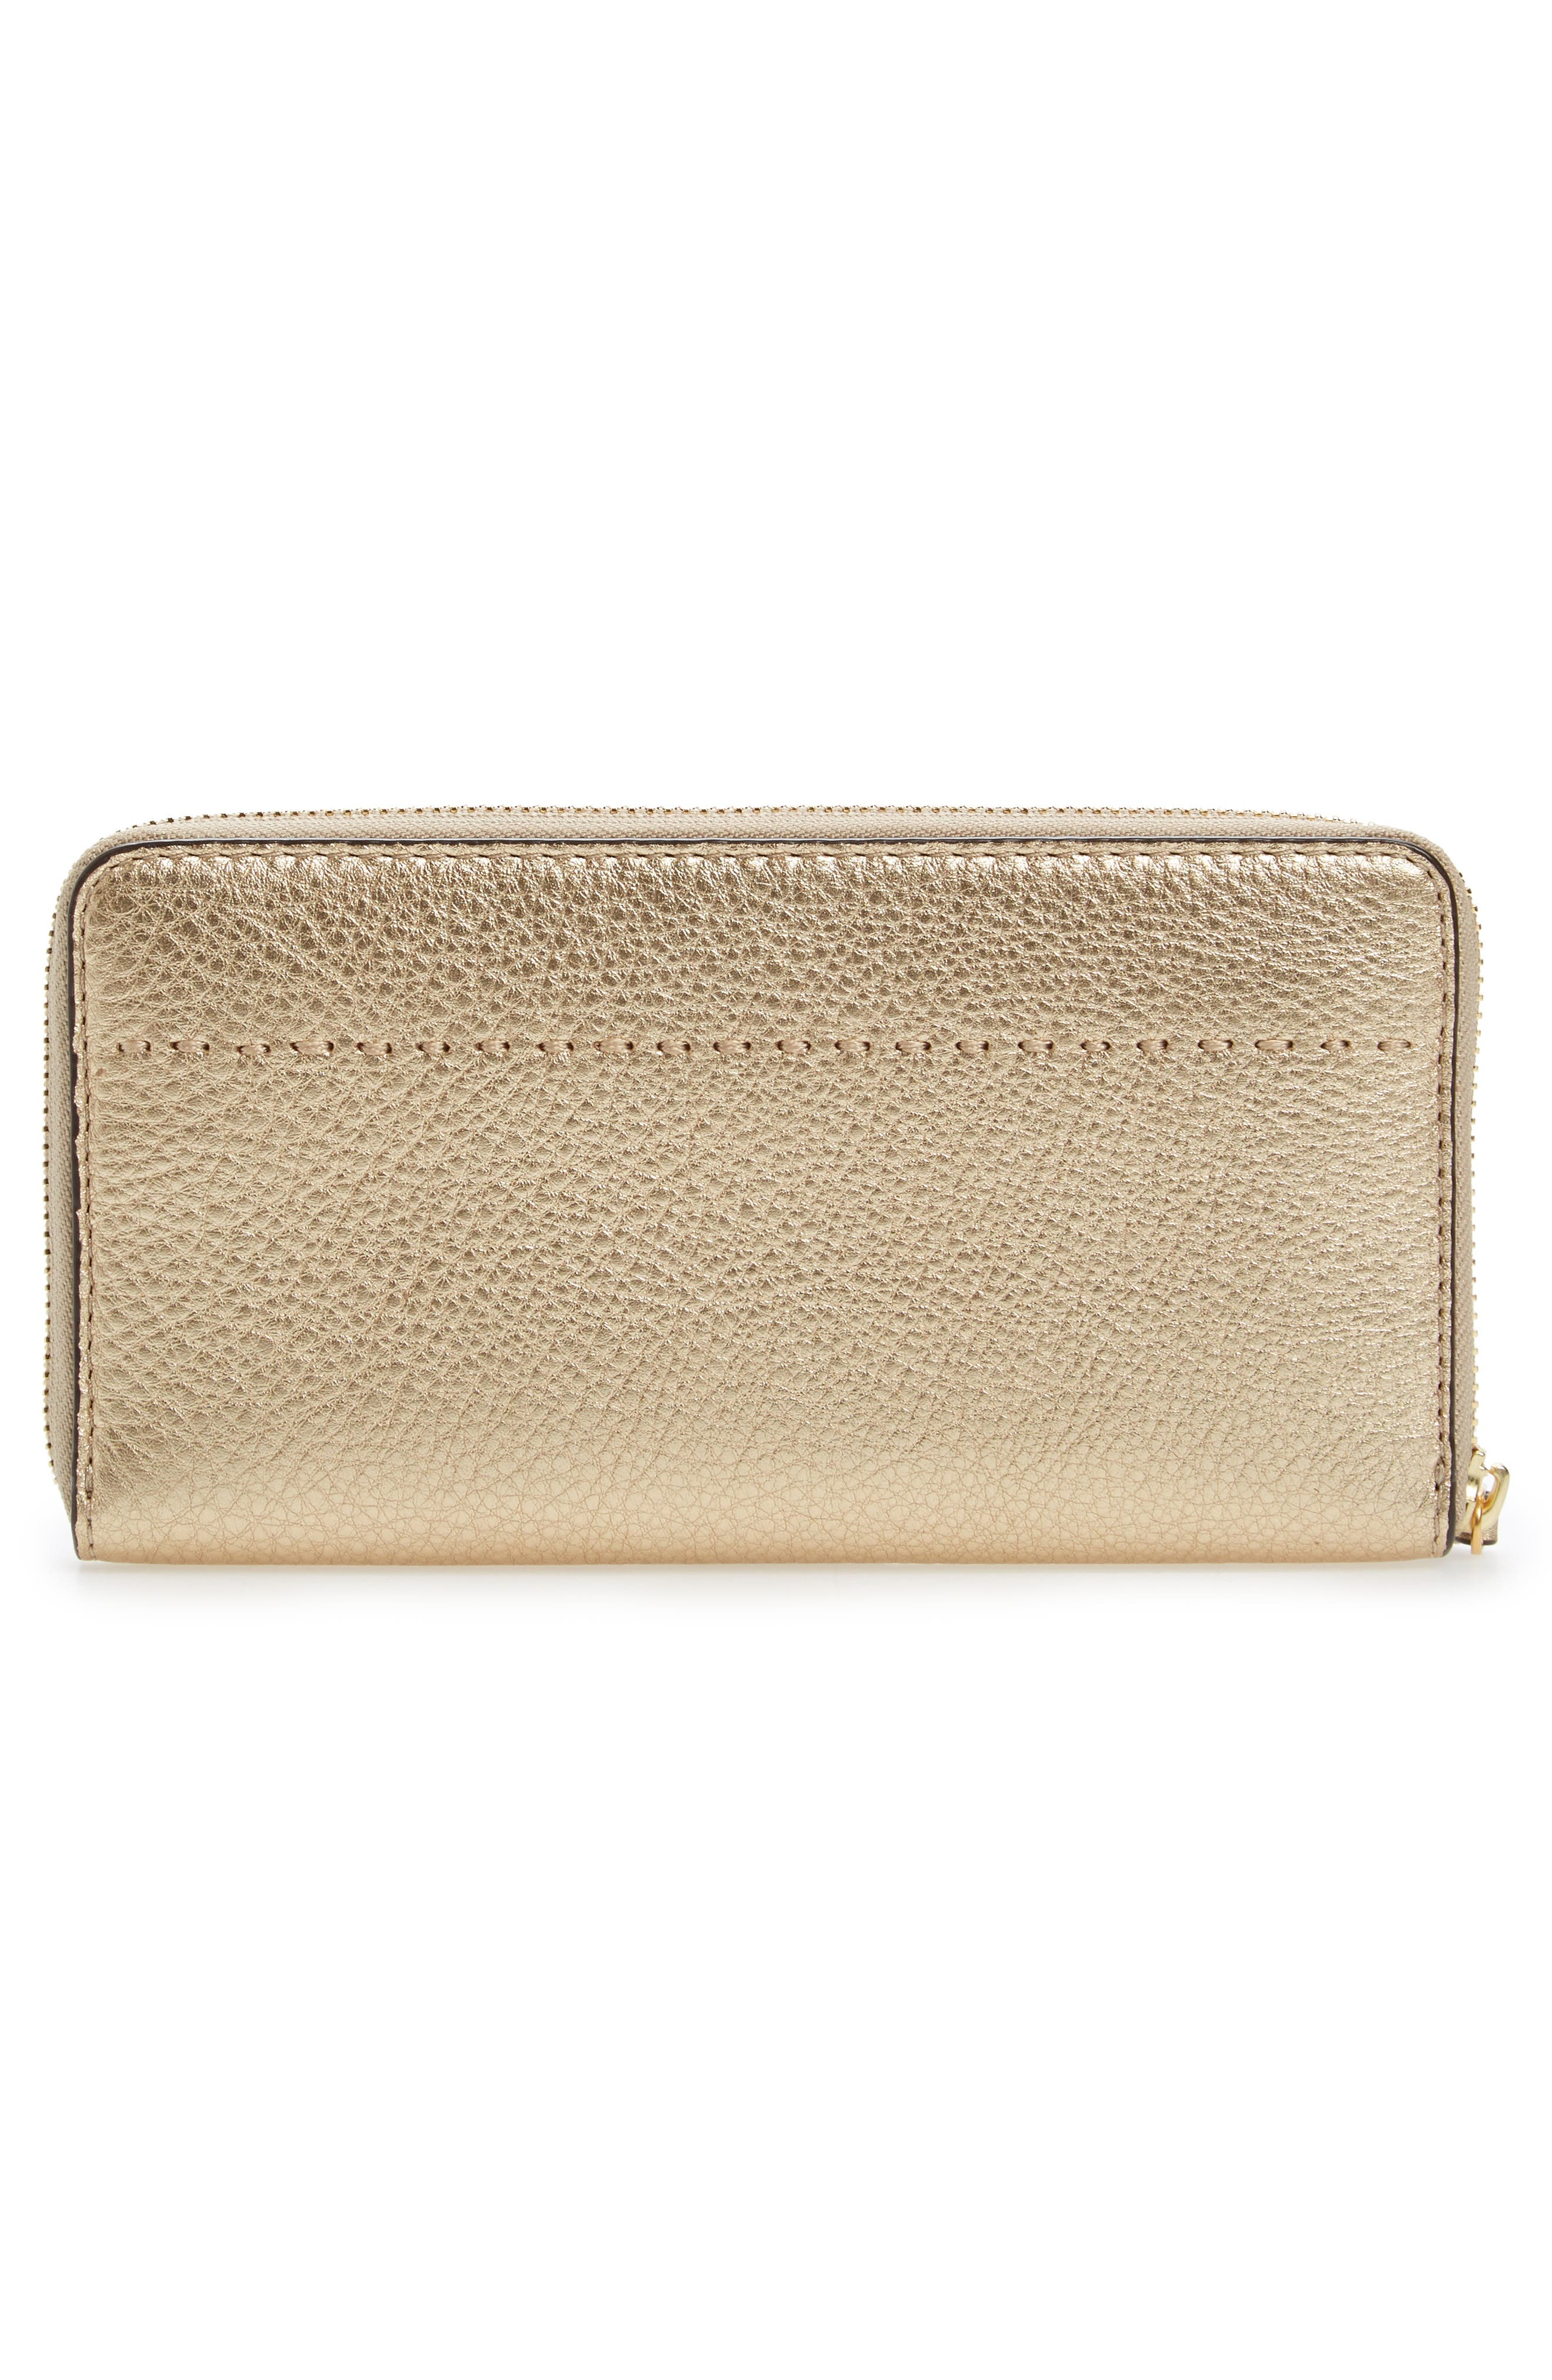 McGraw Leather Continental Wallet,                             Alternate thumbnail 3, color,                             710